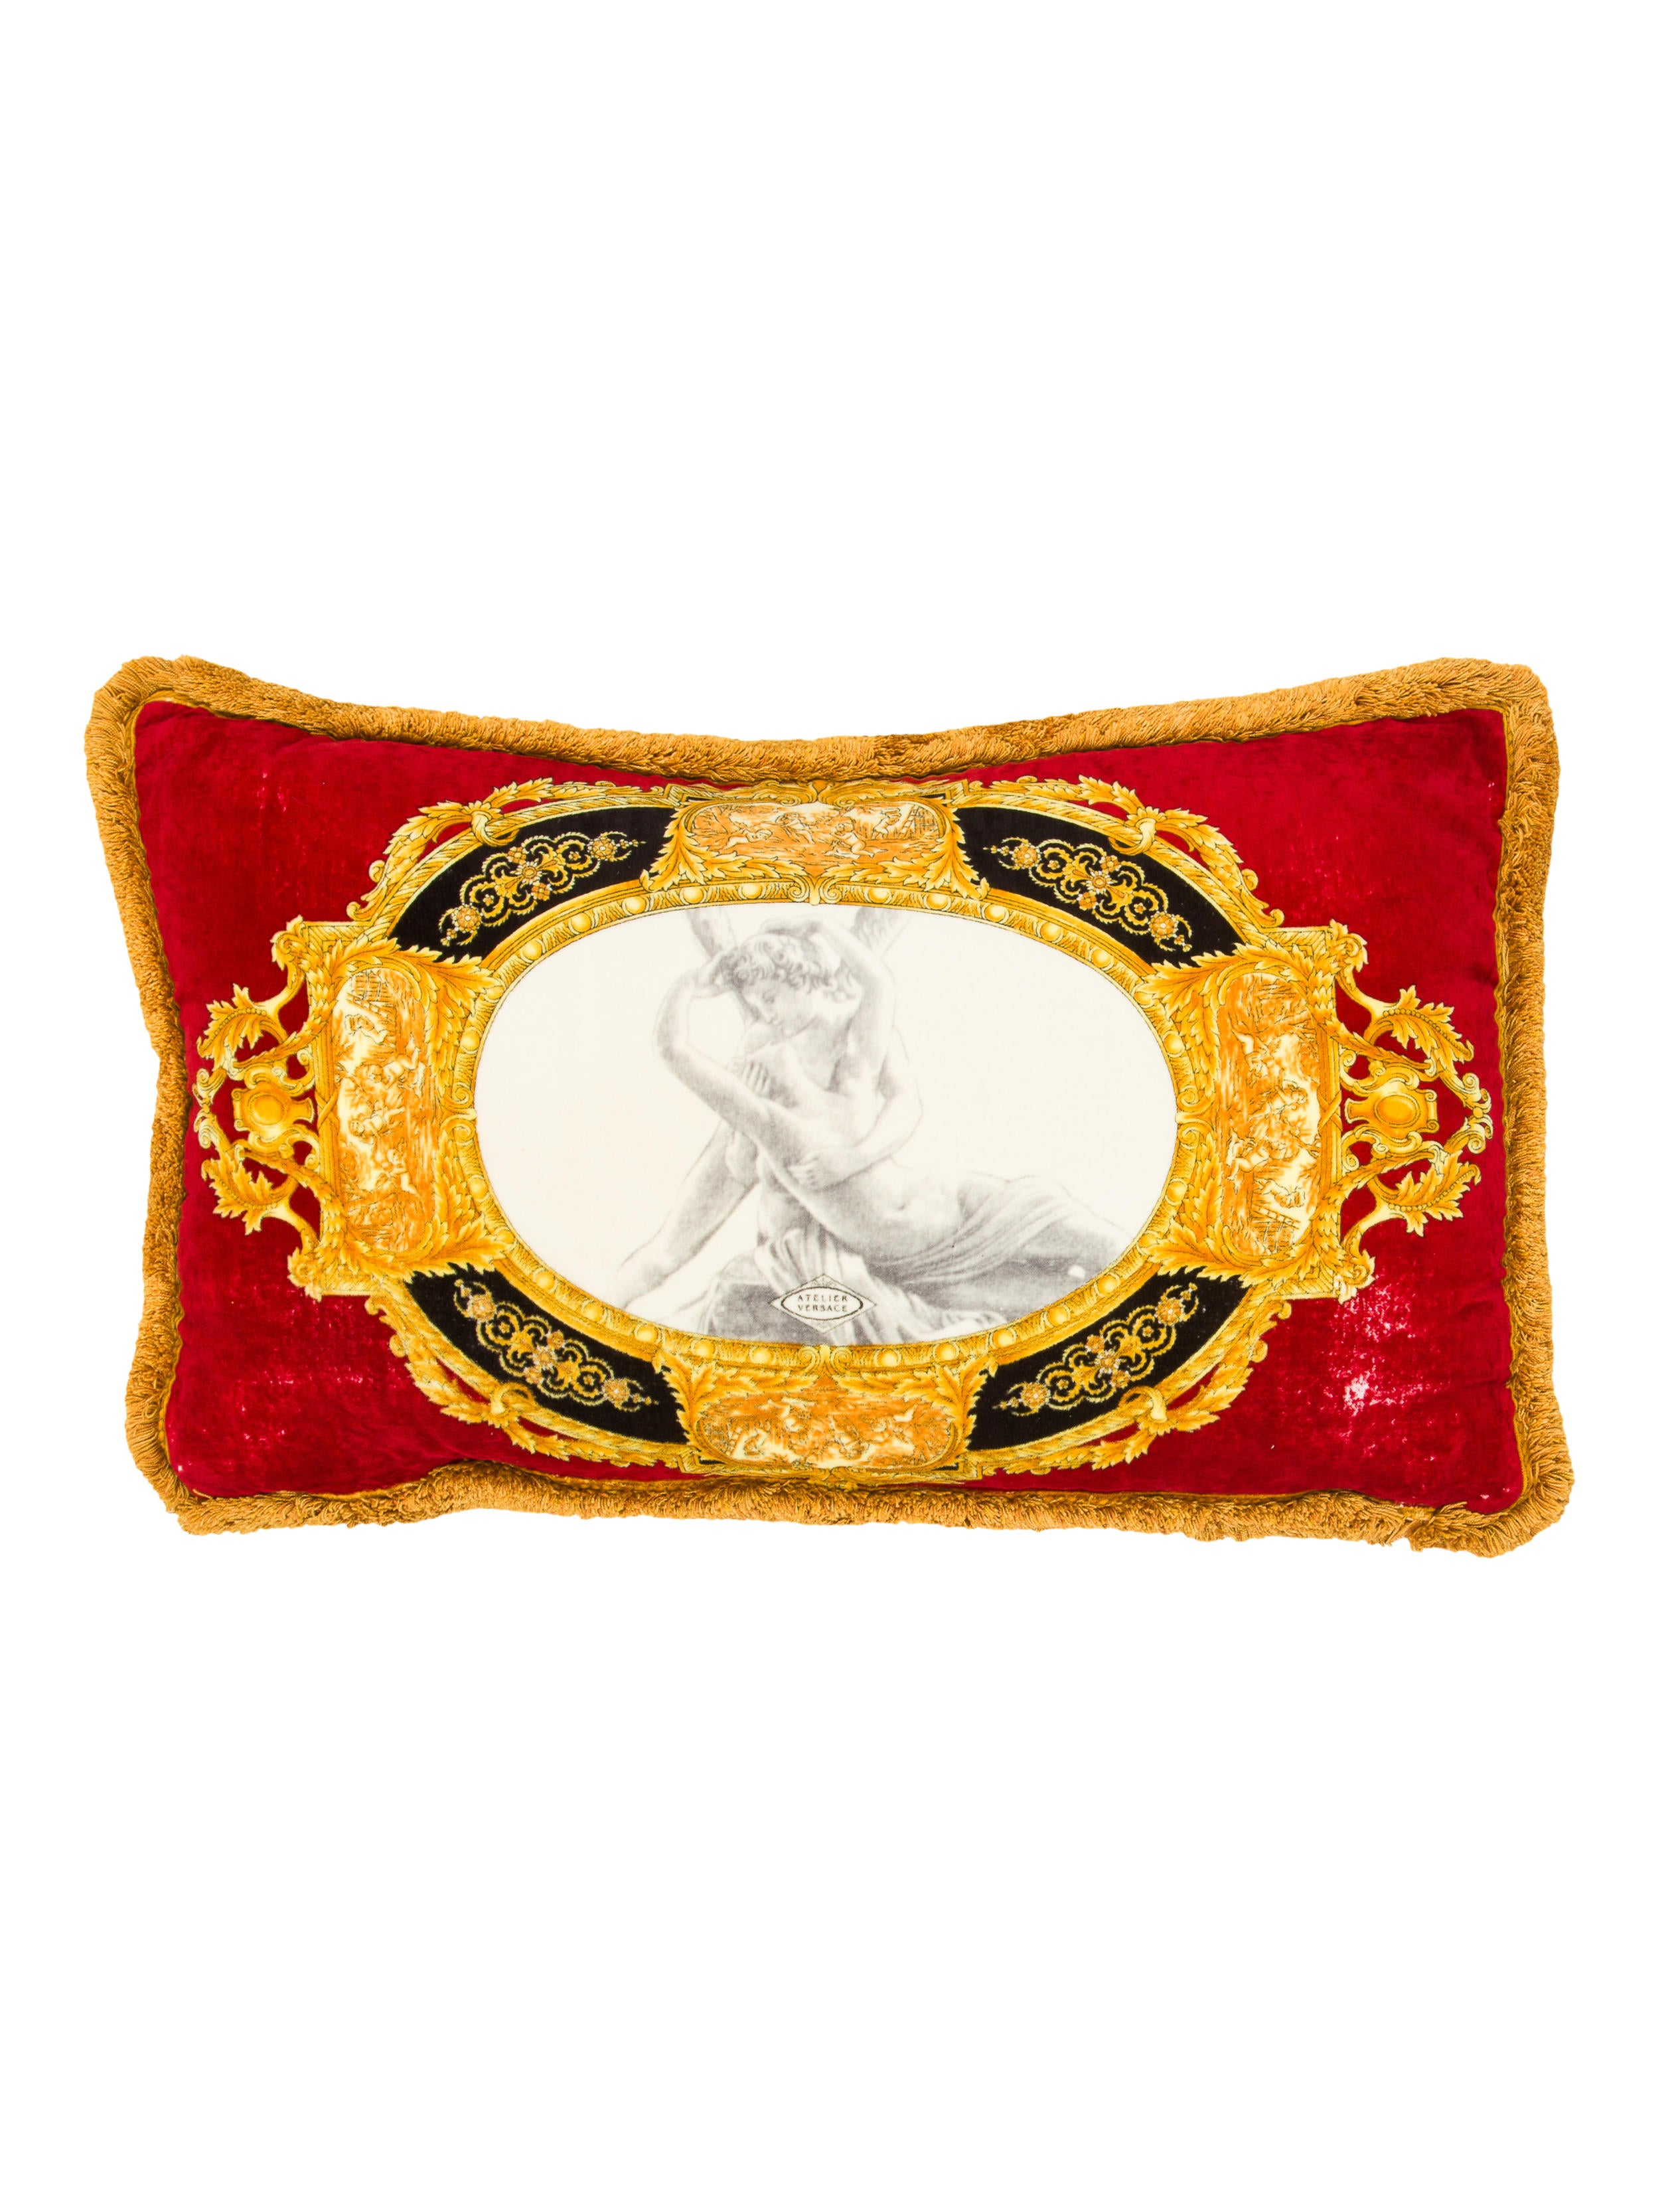 Versace Throw Pillow - Pillows And Throws - VES24498 The RealReal